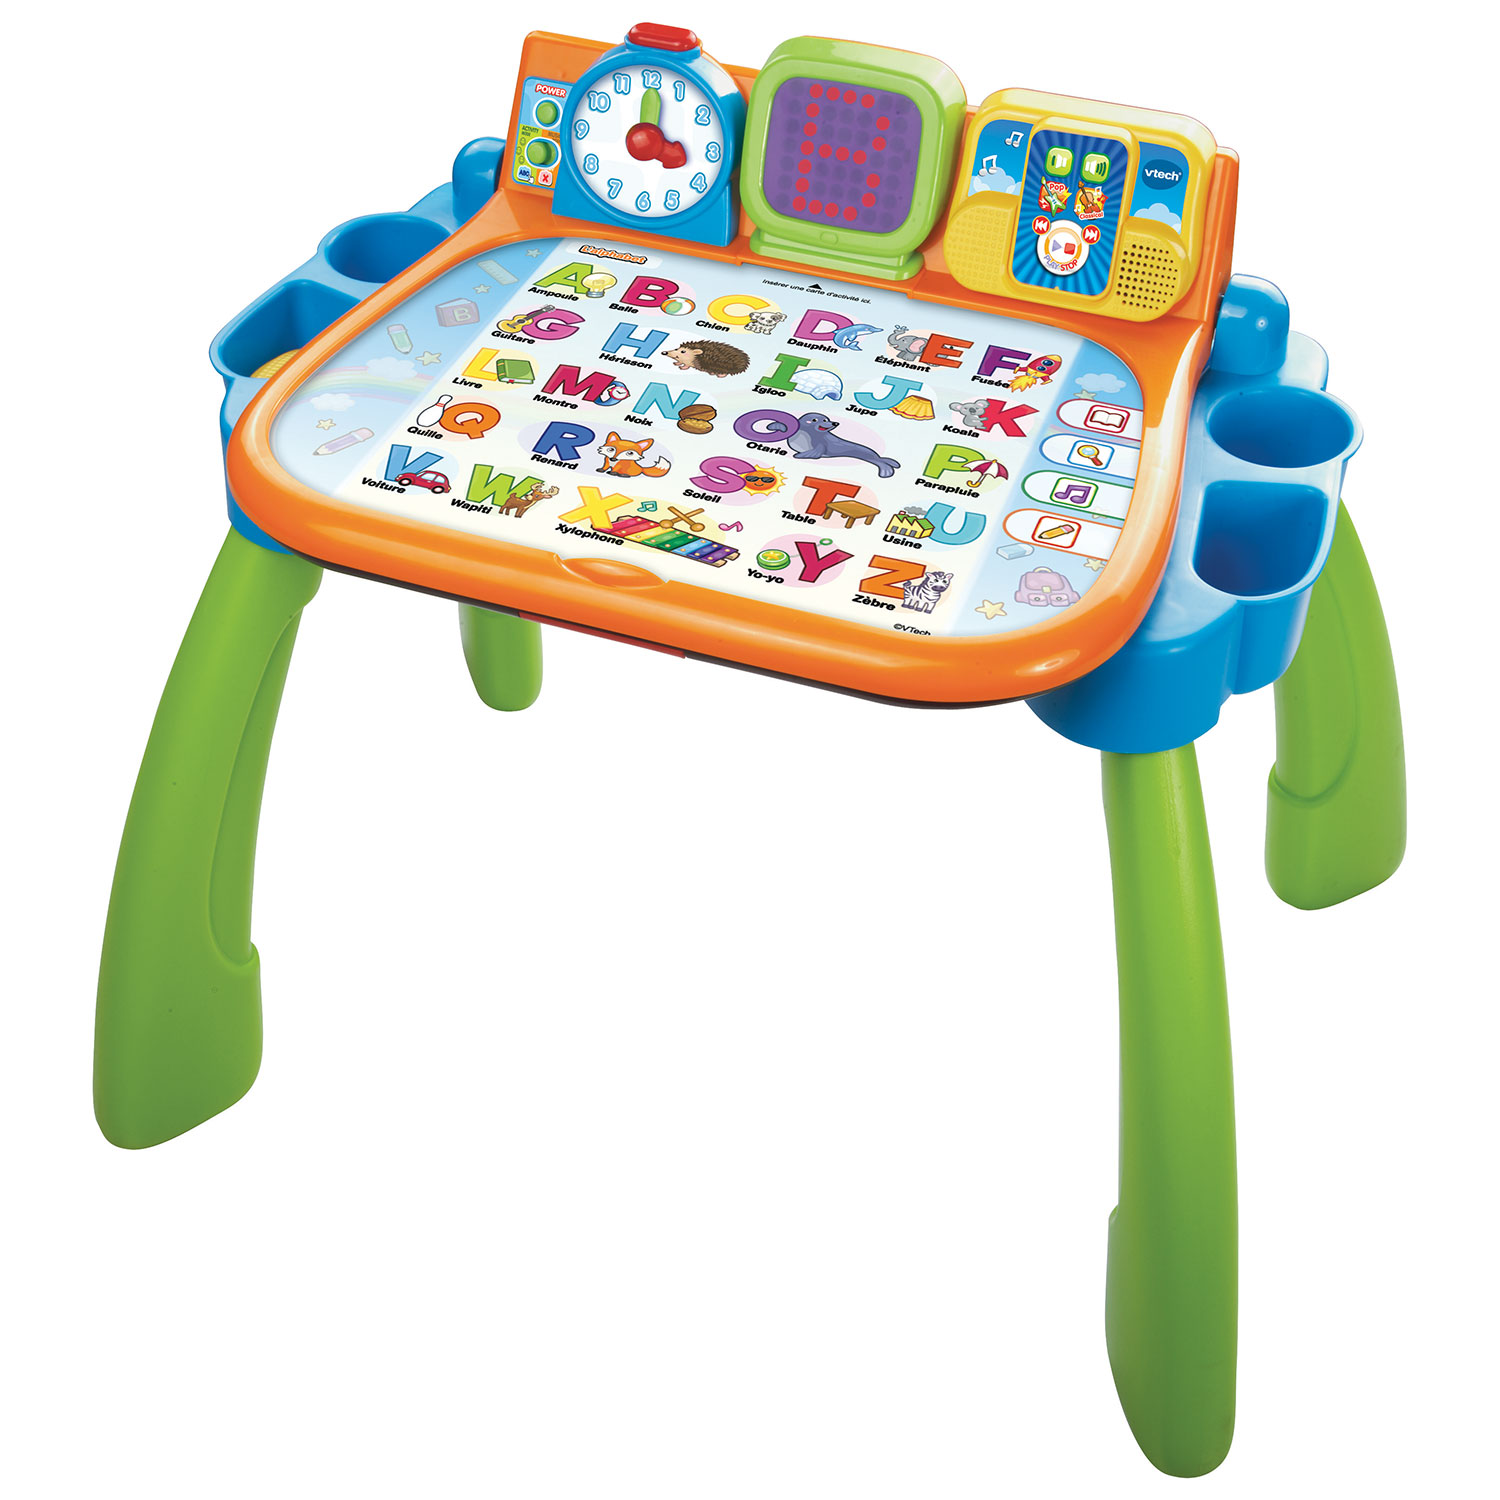 vtech touch  learn in activity desk  french  educational  - vtech touch  learn in activity desk  french  educational toys infant development  best buy canada